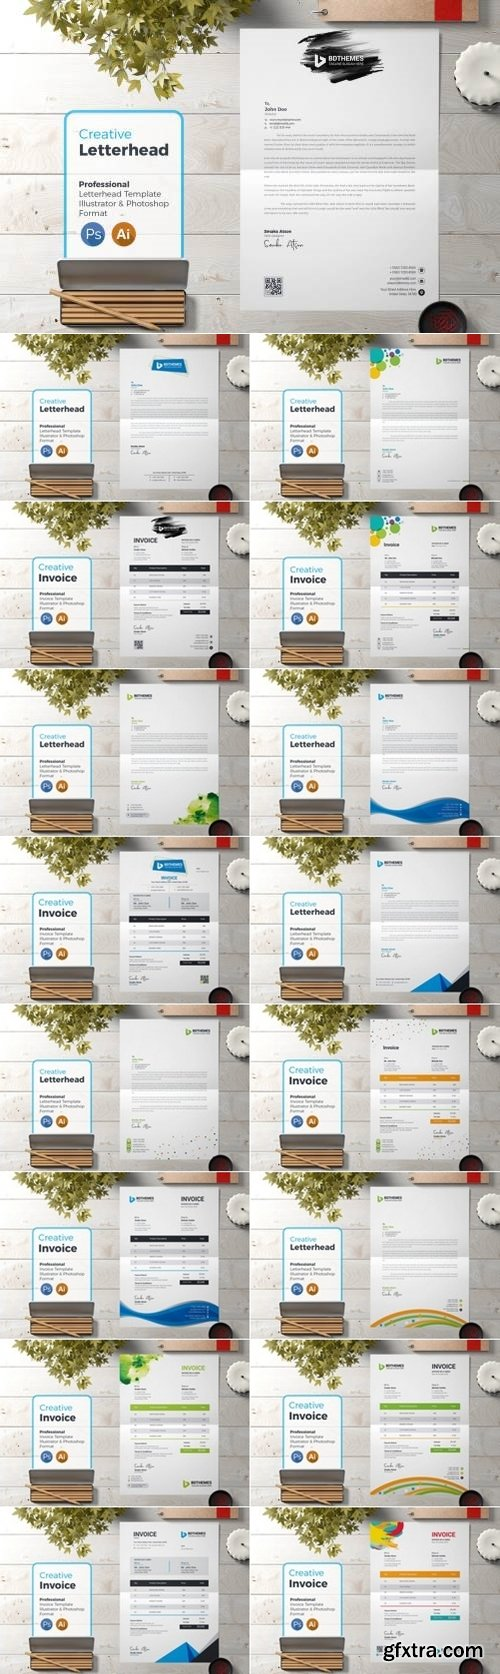 Business Letterhead and Invoice Template Bundle 2